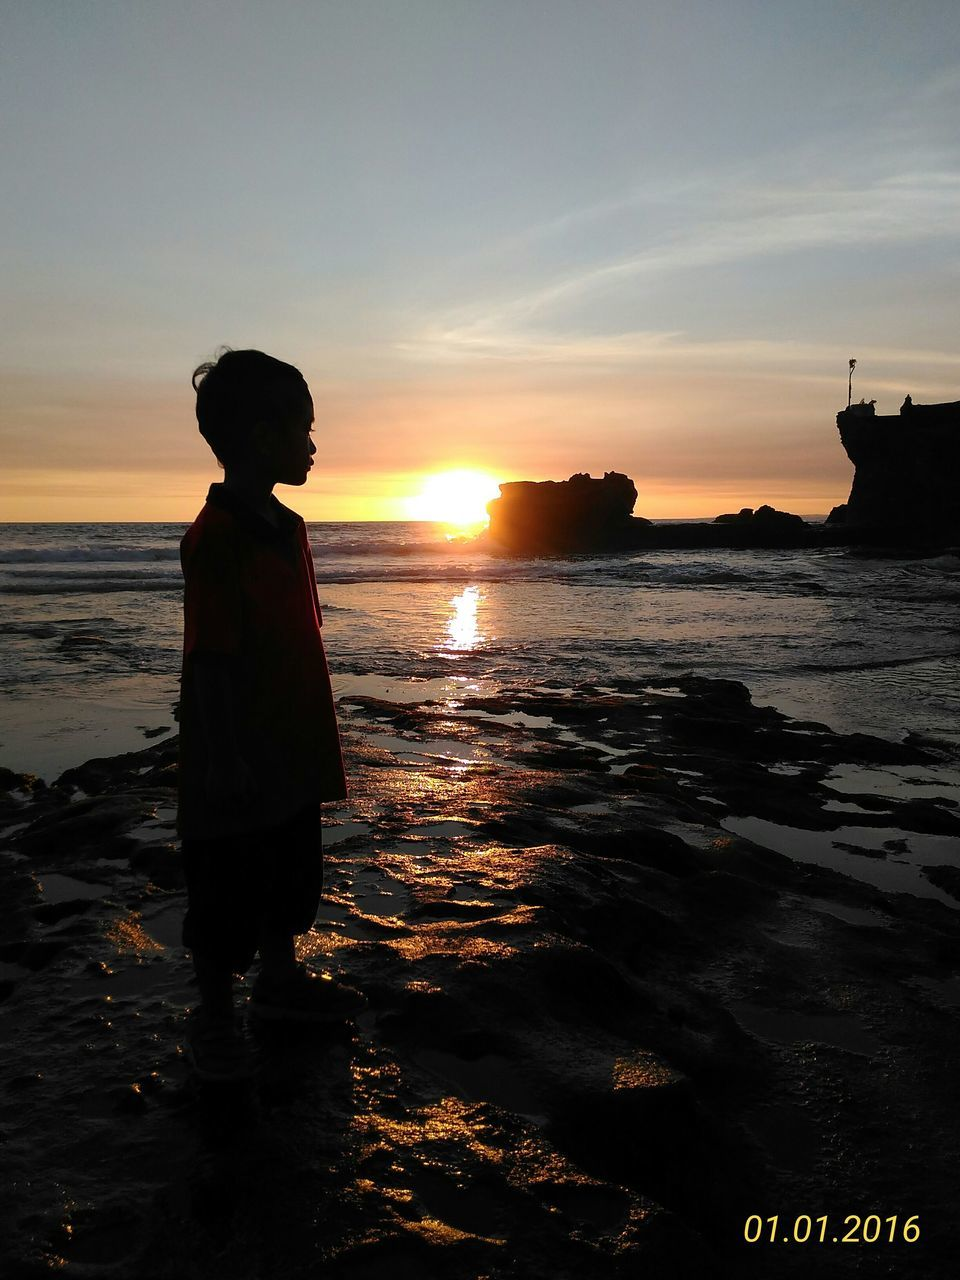 sunset, sea, silhouette, beach, real people, childhood, one person, standing, water, boys, full length, sun, sky, nature, beauty in nature, outdoors, scenics, horizon over water